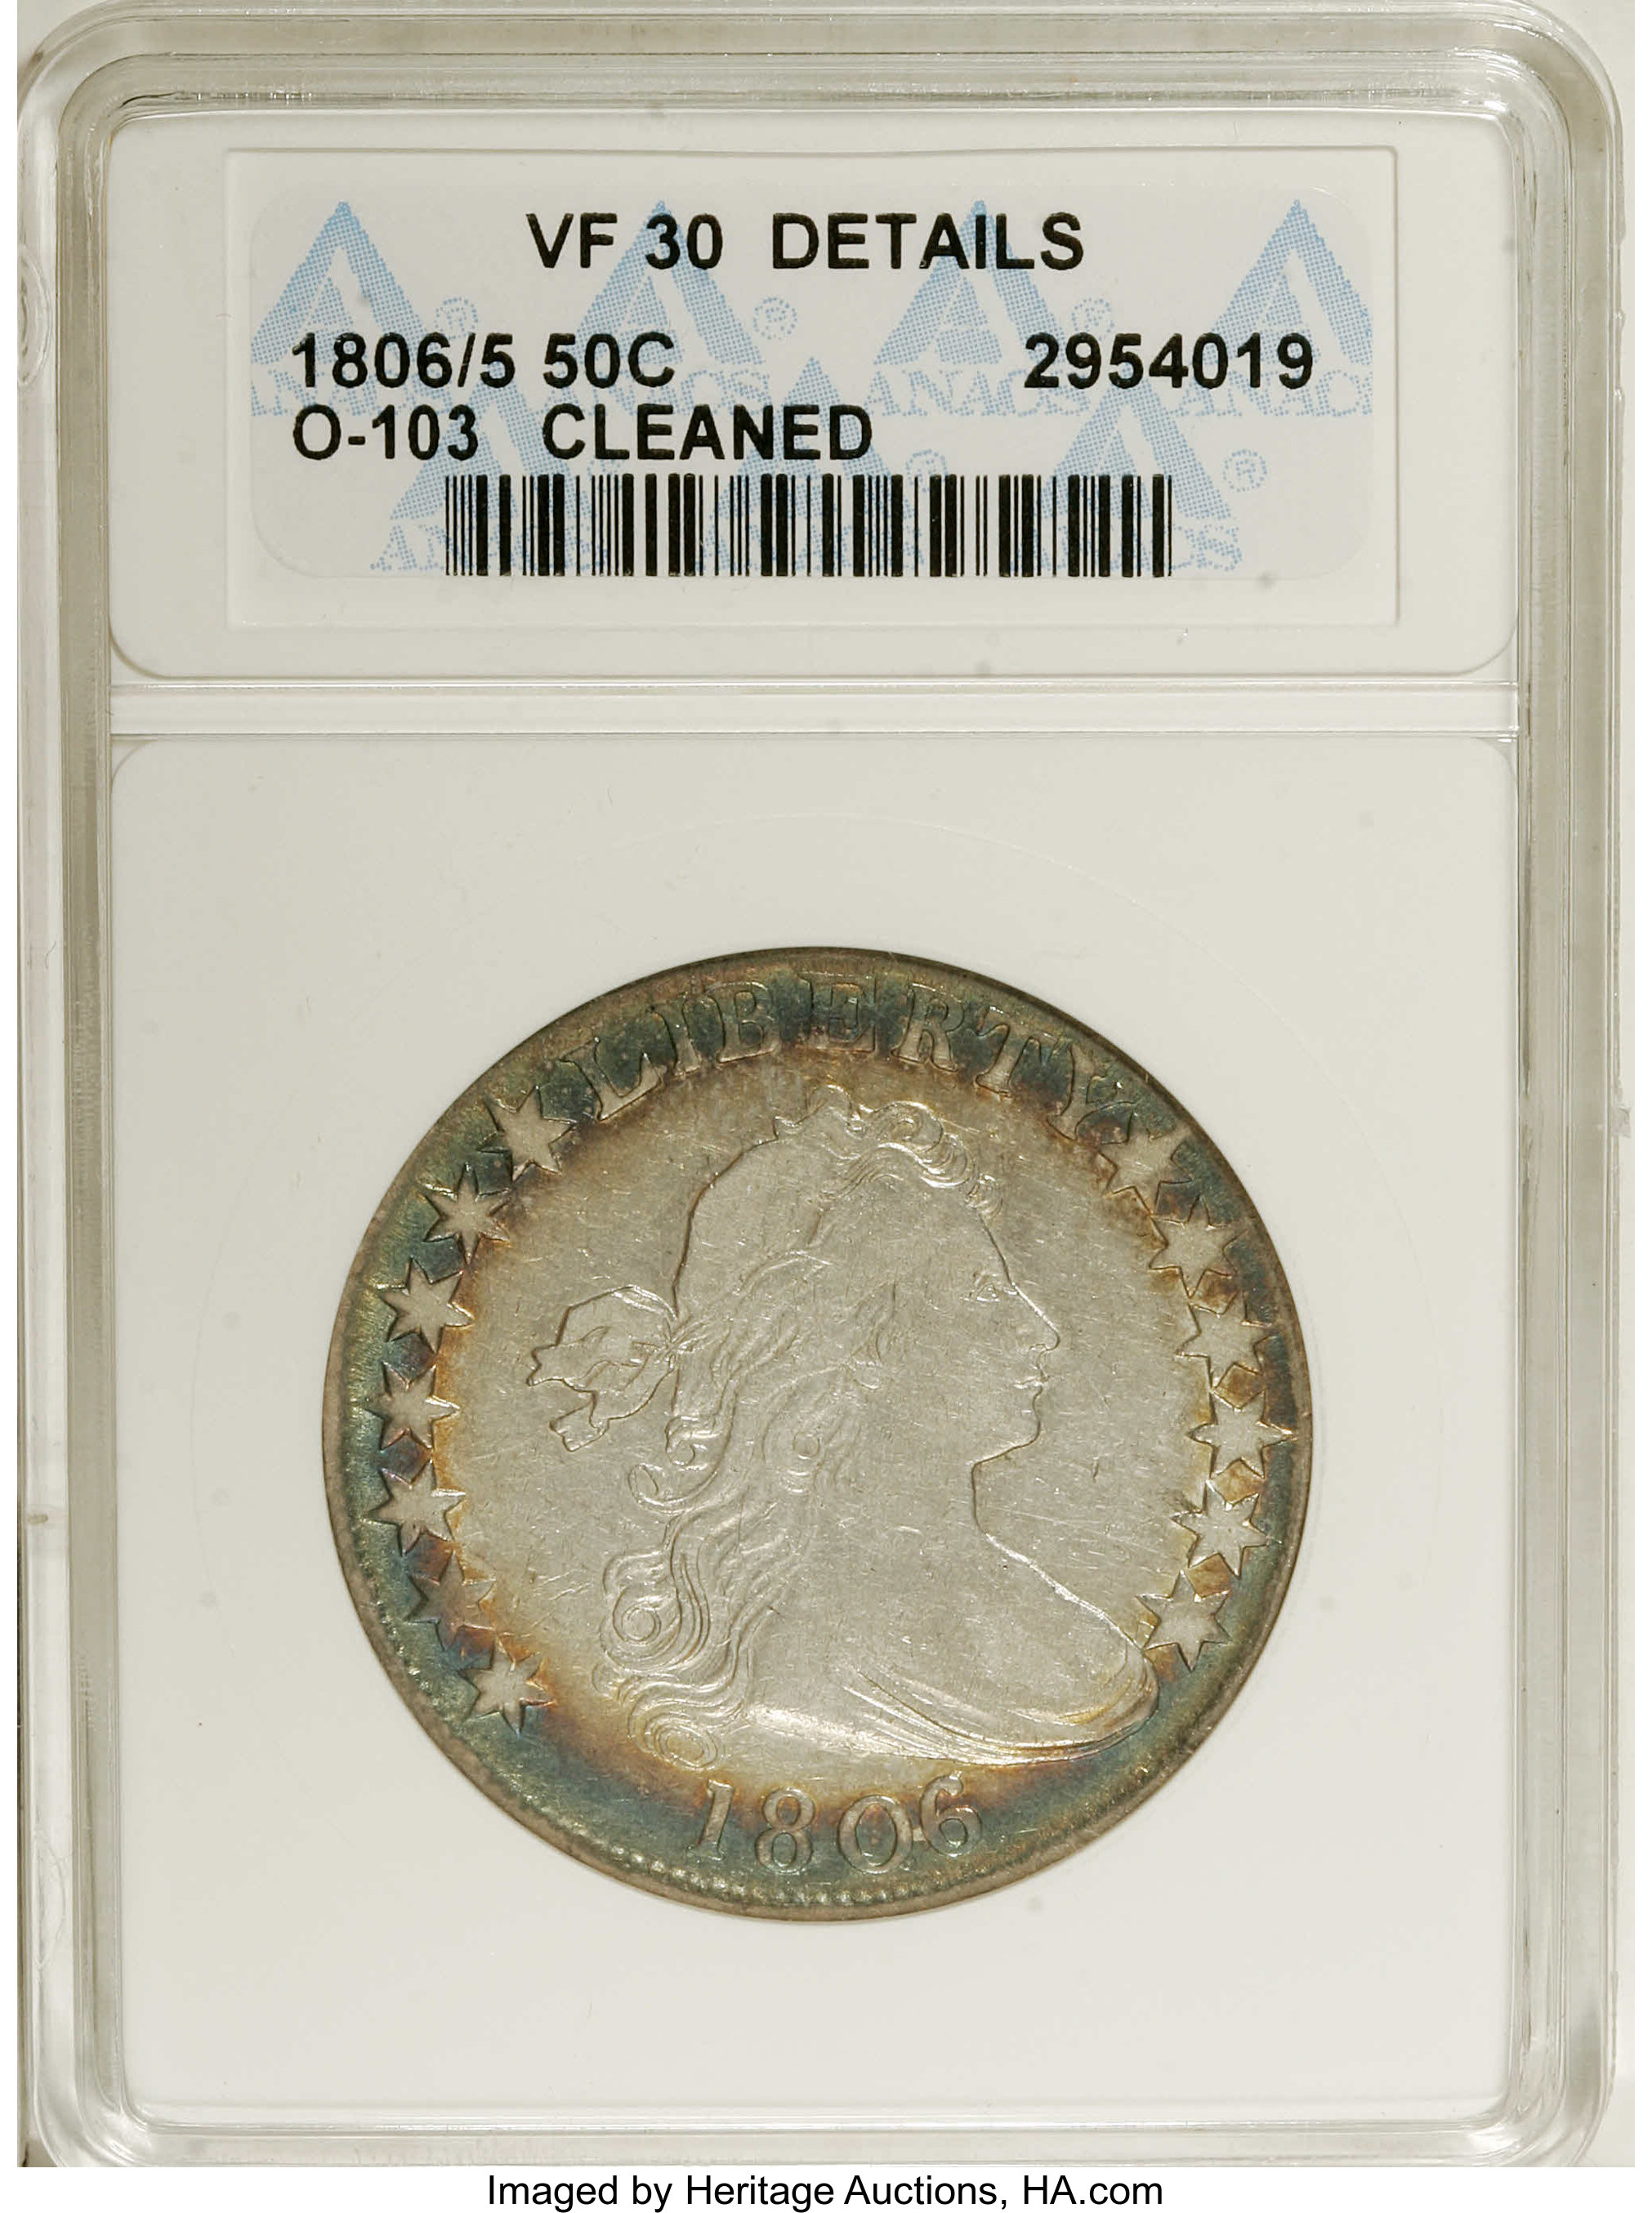 1806/5 50C --Cleaned--ANACS  VF30 Details  O-103, R 2  Bands